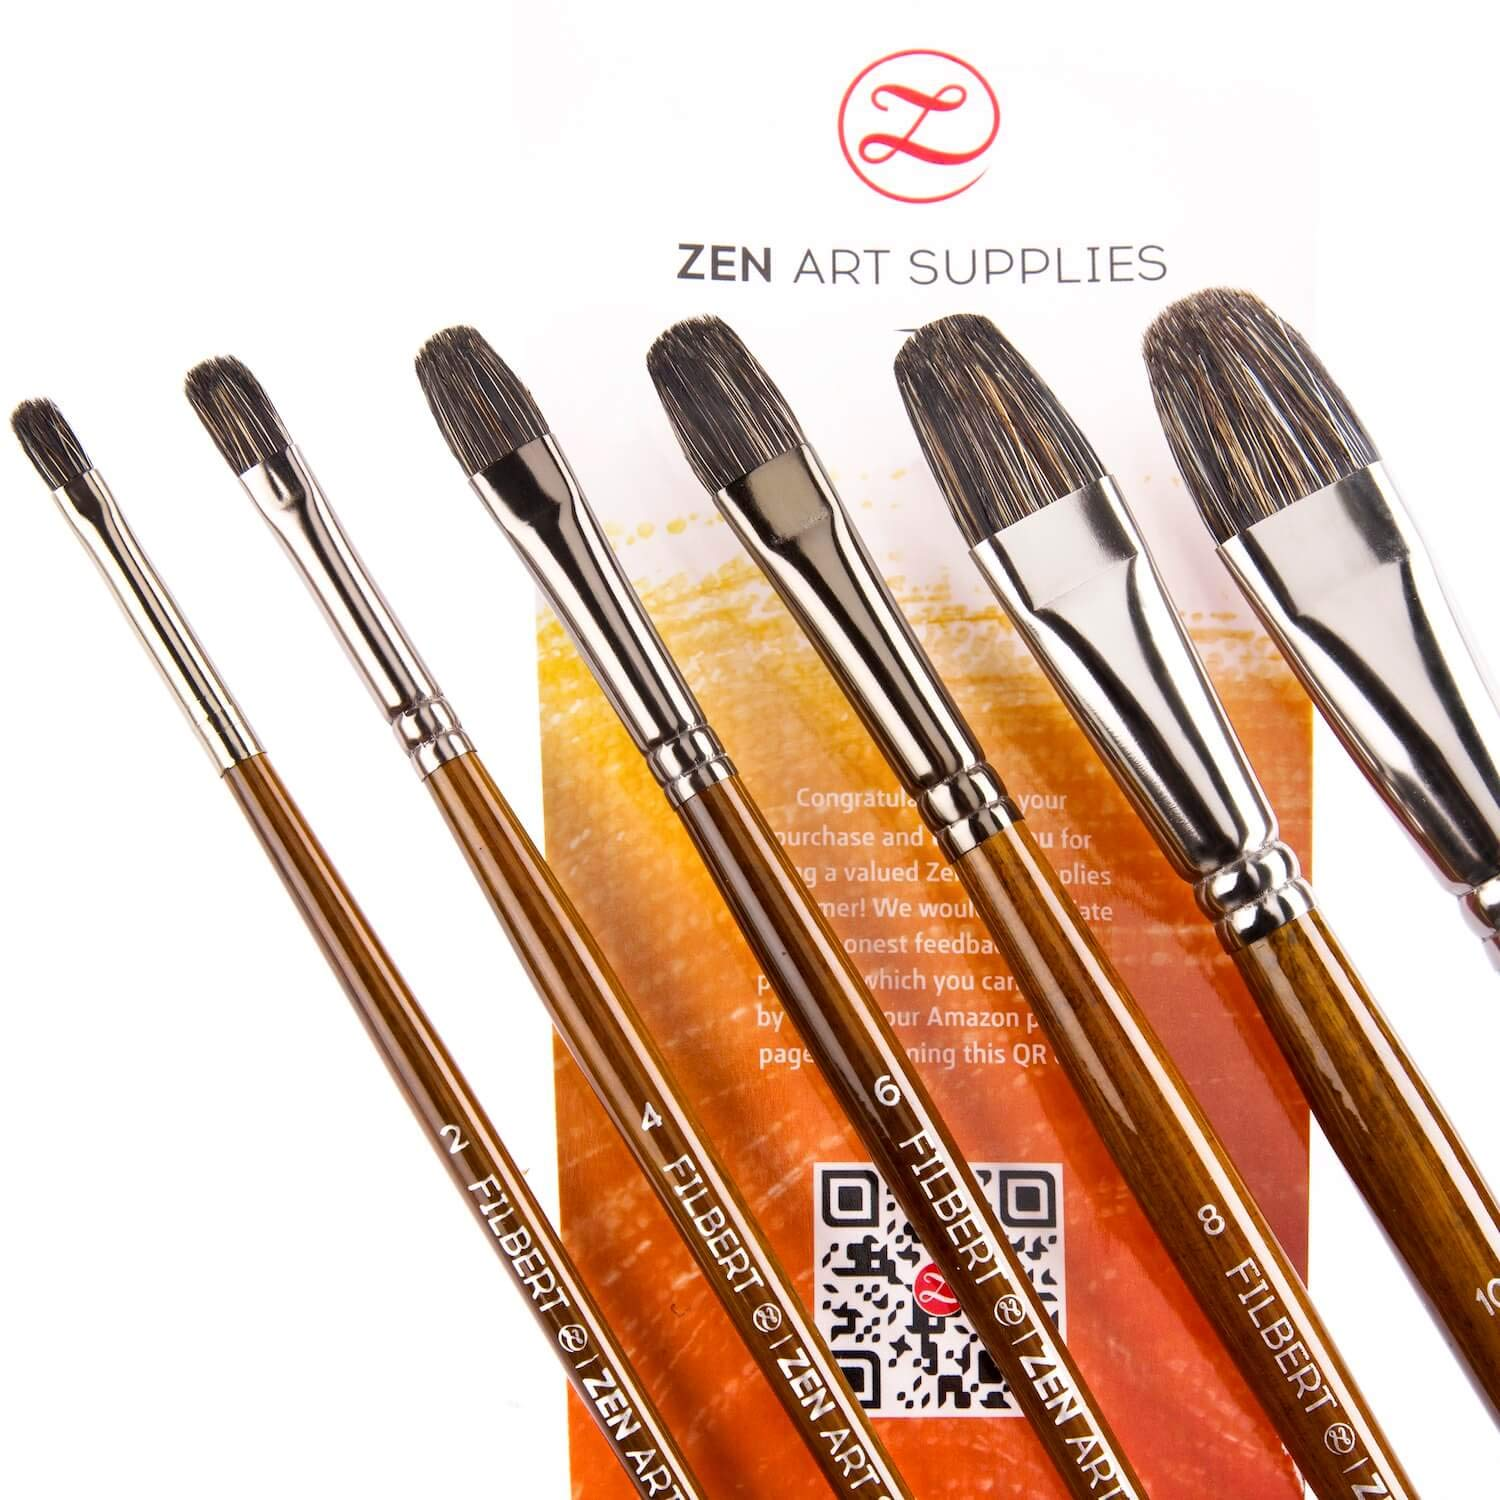 Professional Artist Filbert Brushes for Oil & Heavy-body Acrylics - Long-lasting Natural Badger & Synthetic Blend - Lacquered Birchwood Long Handles - 6-pcs Set, Artist's Choice Collection by ZenArt ZenArt Supplies 4336956140